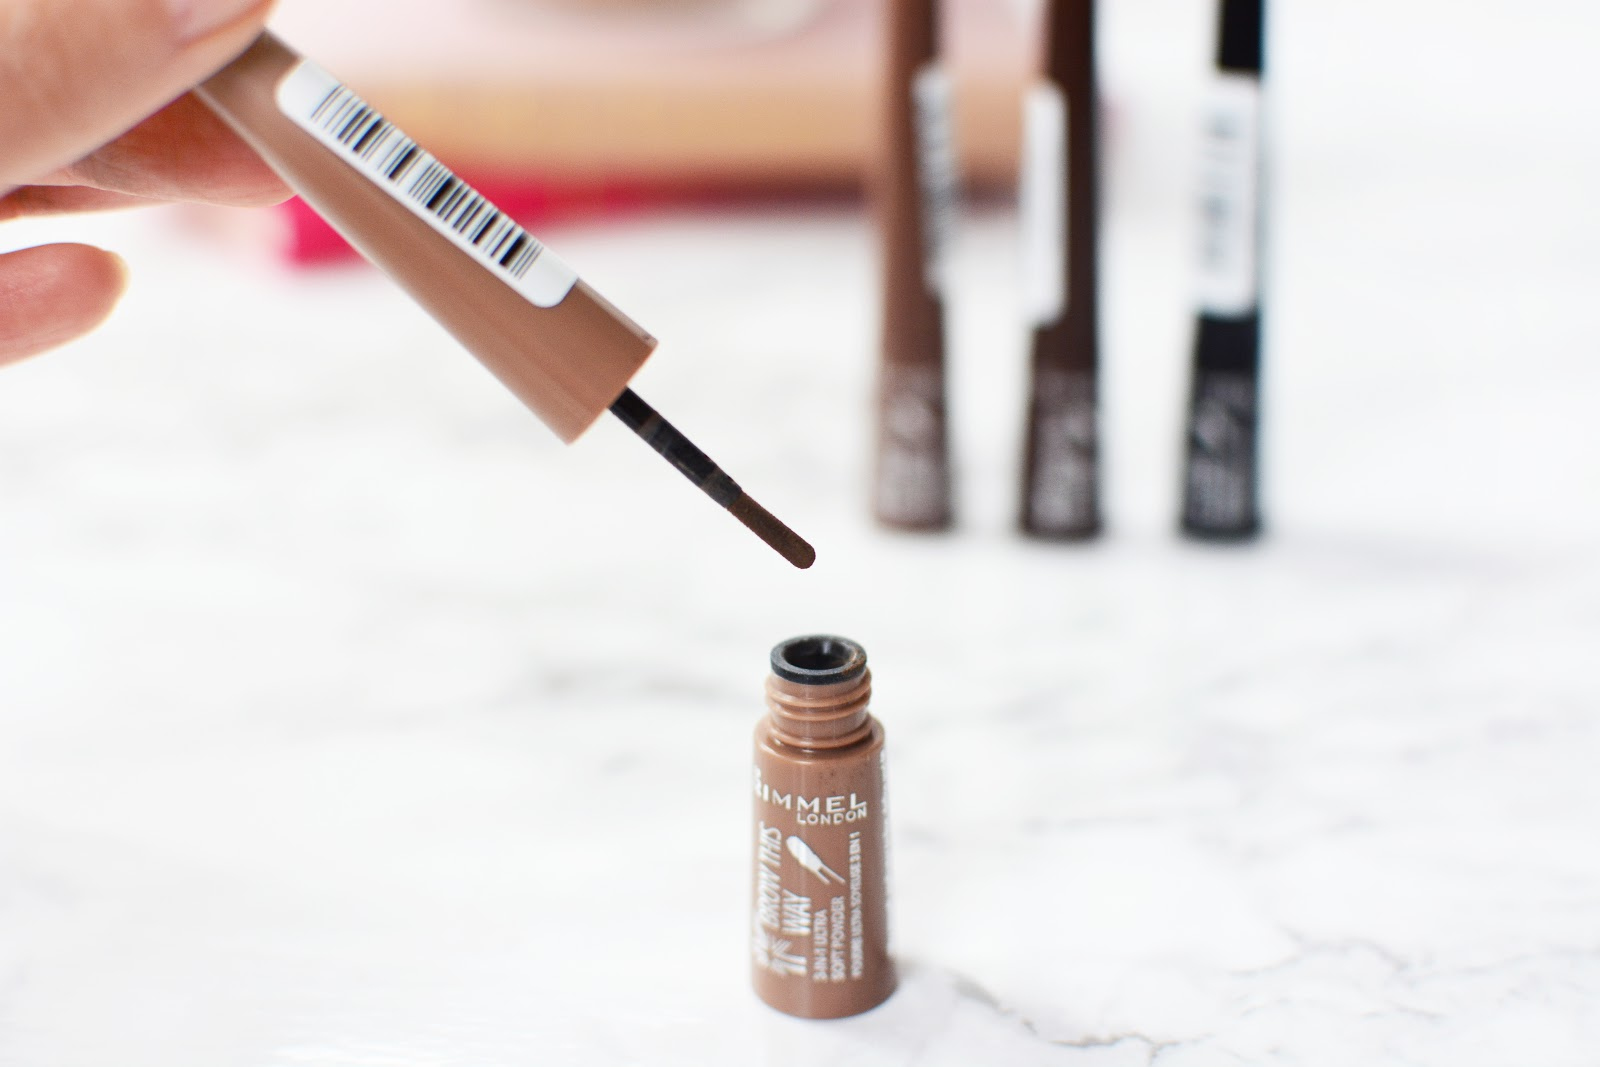 Rimmel Brow The Way Shake Filling Powders Review